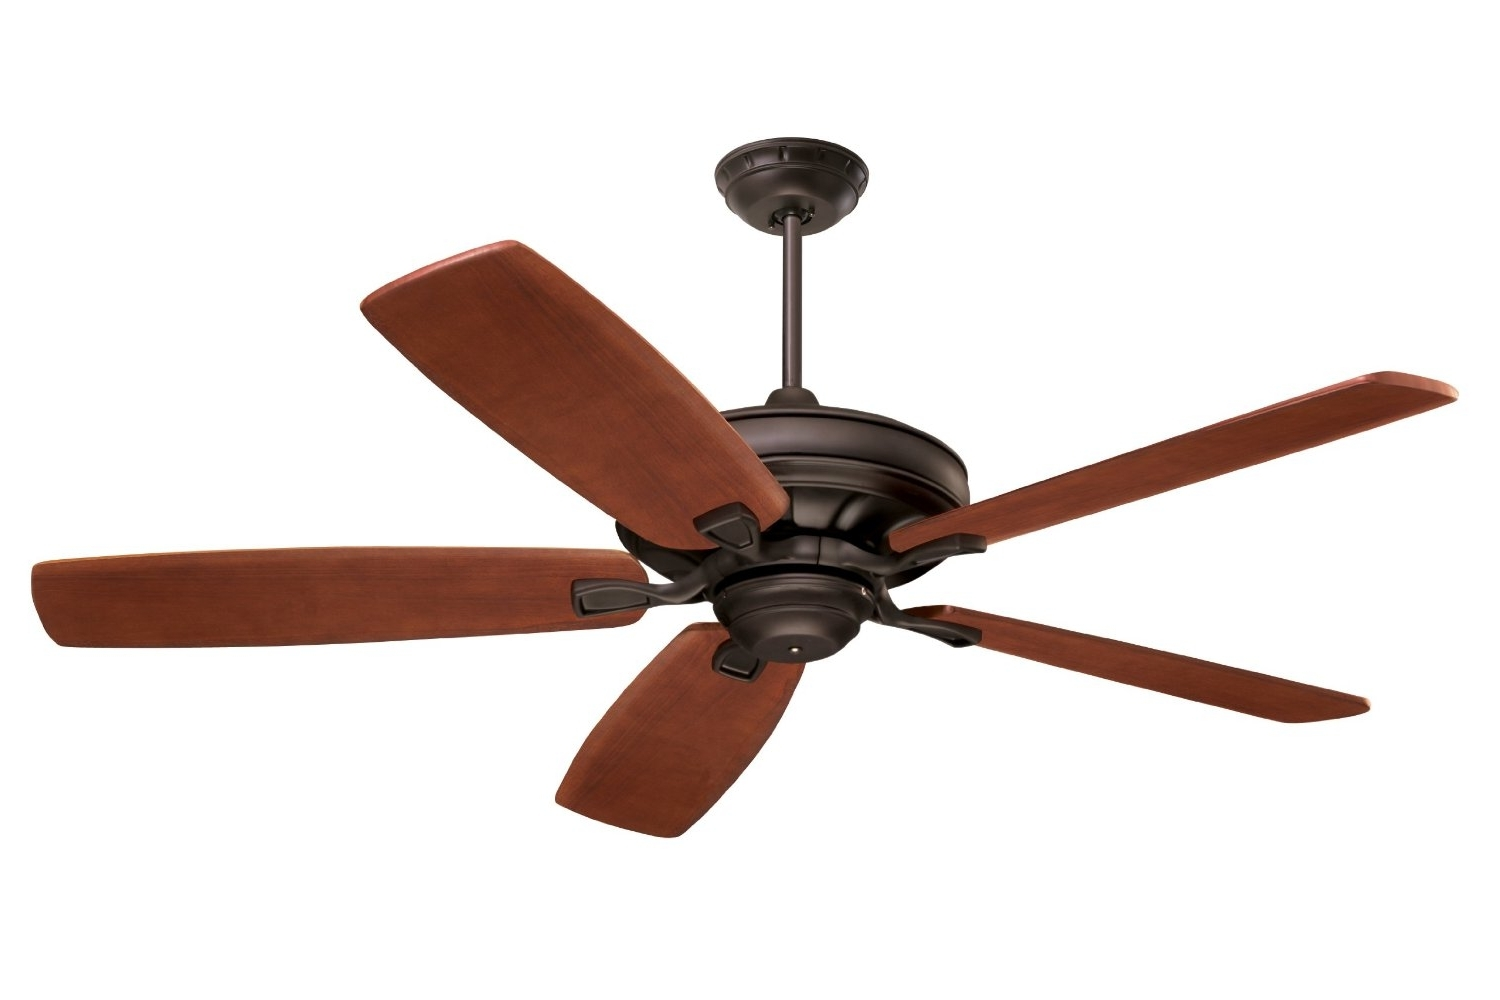 Newest Outdoor Ceiling Fans With Lantern Inside Best Ceiling Fan Reviews Of 2018 At Topproducts (View 8 of 20)